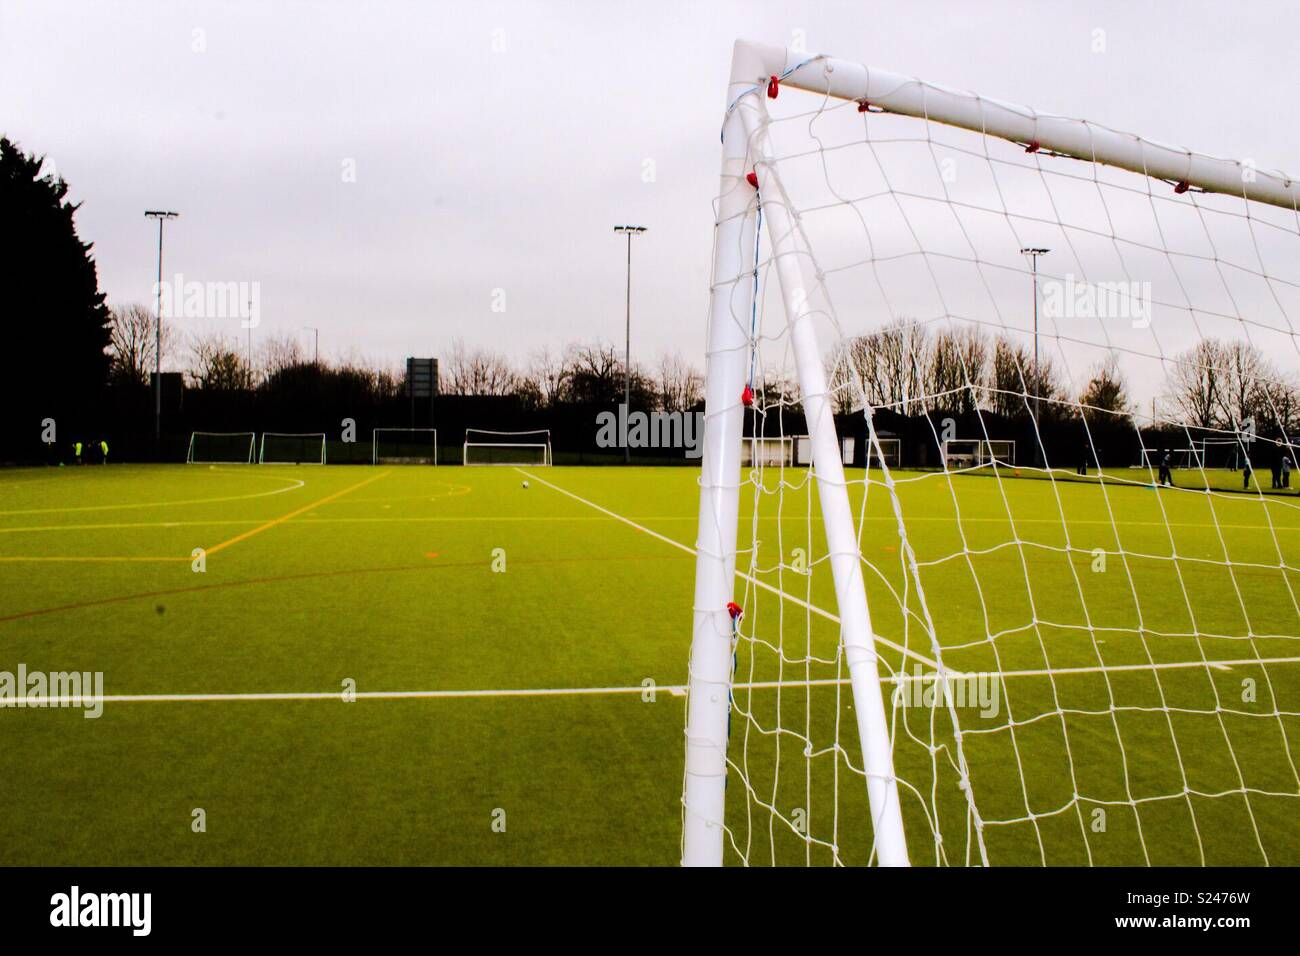 4g pitch - Stock Image